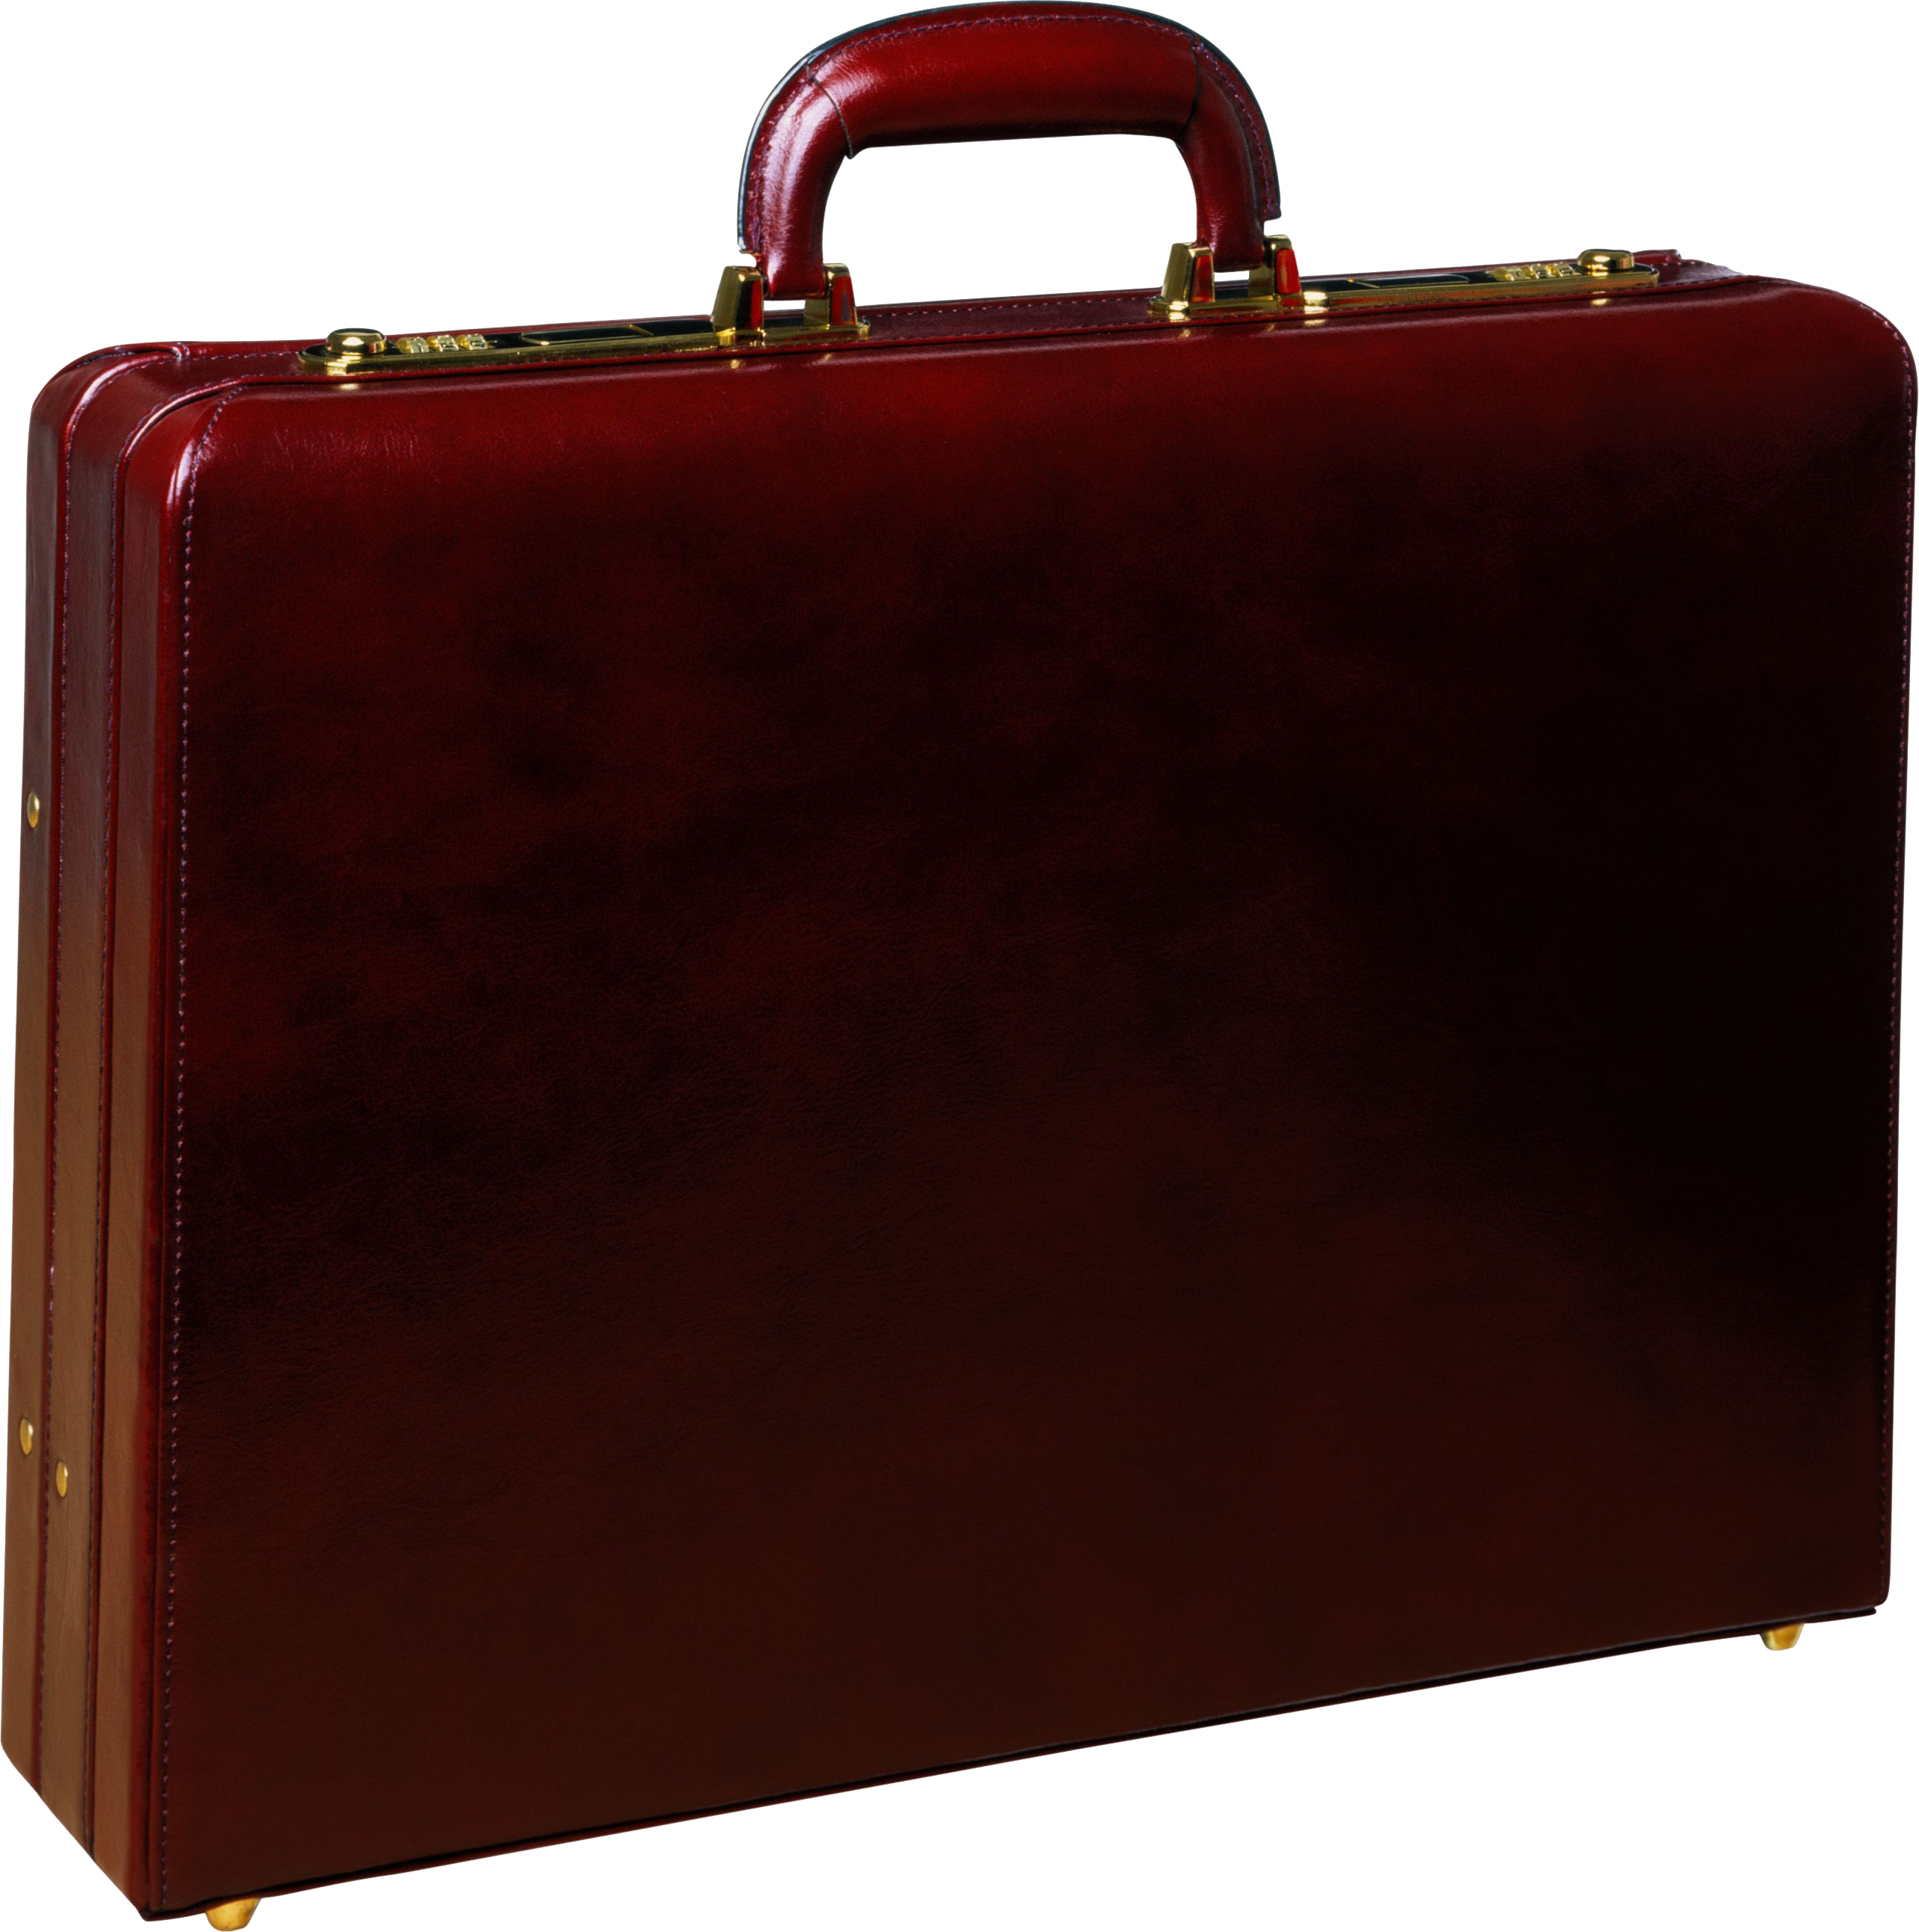 Luggage clipart business. Suitcase png image purepng